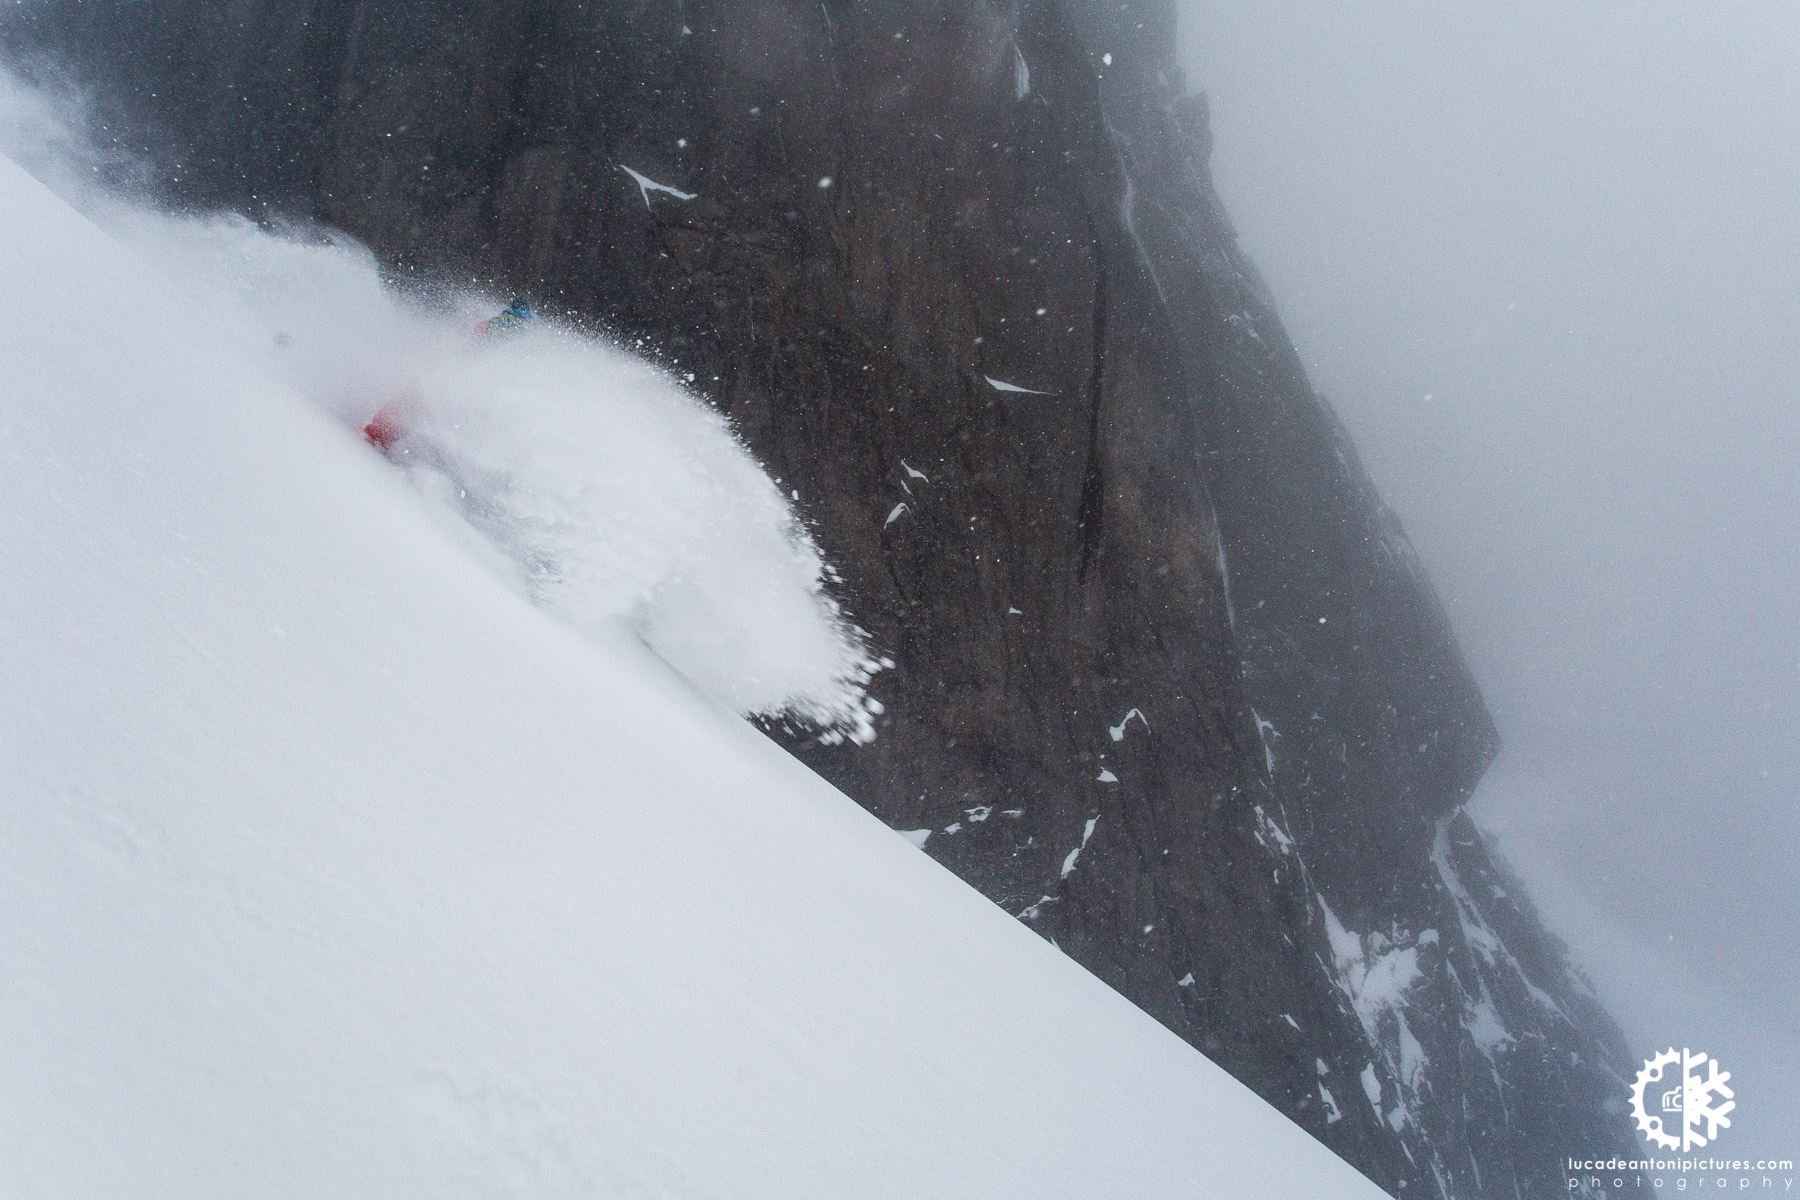 Skier: Denis Soverini - Location: Lofoten